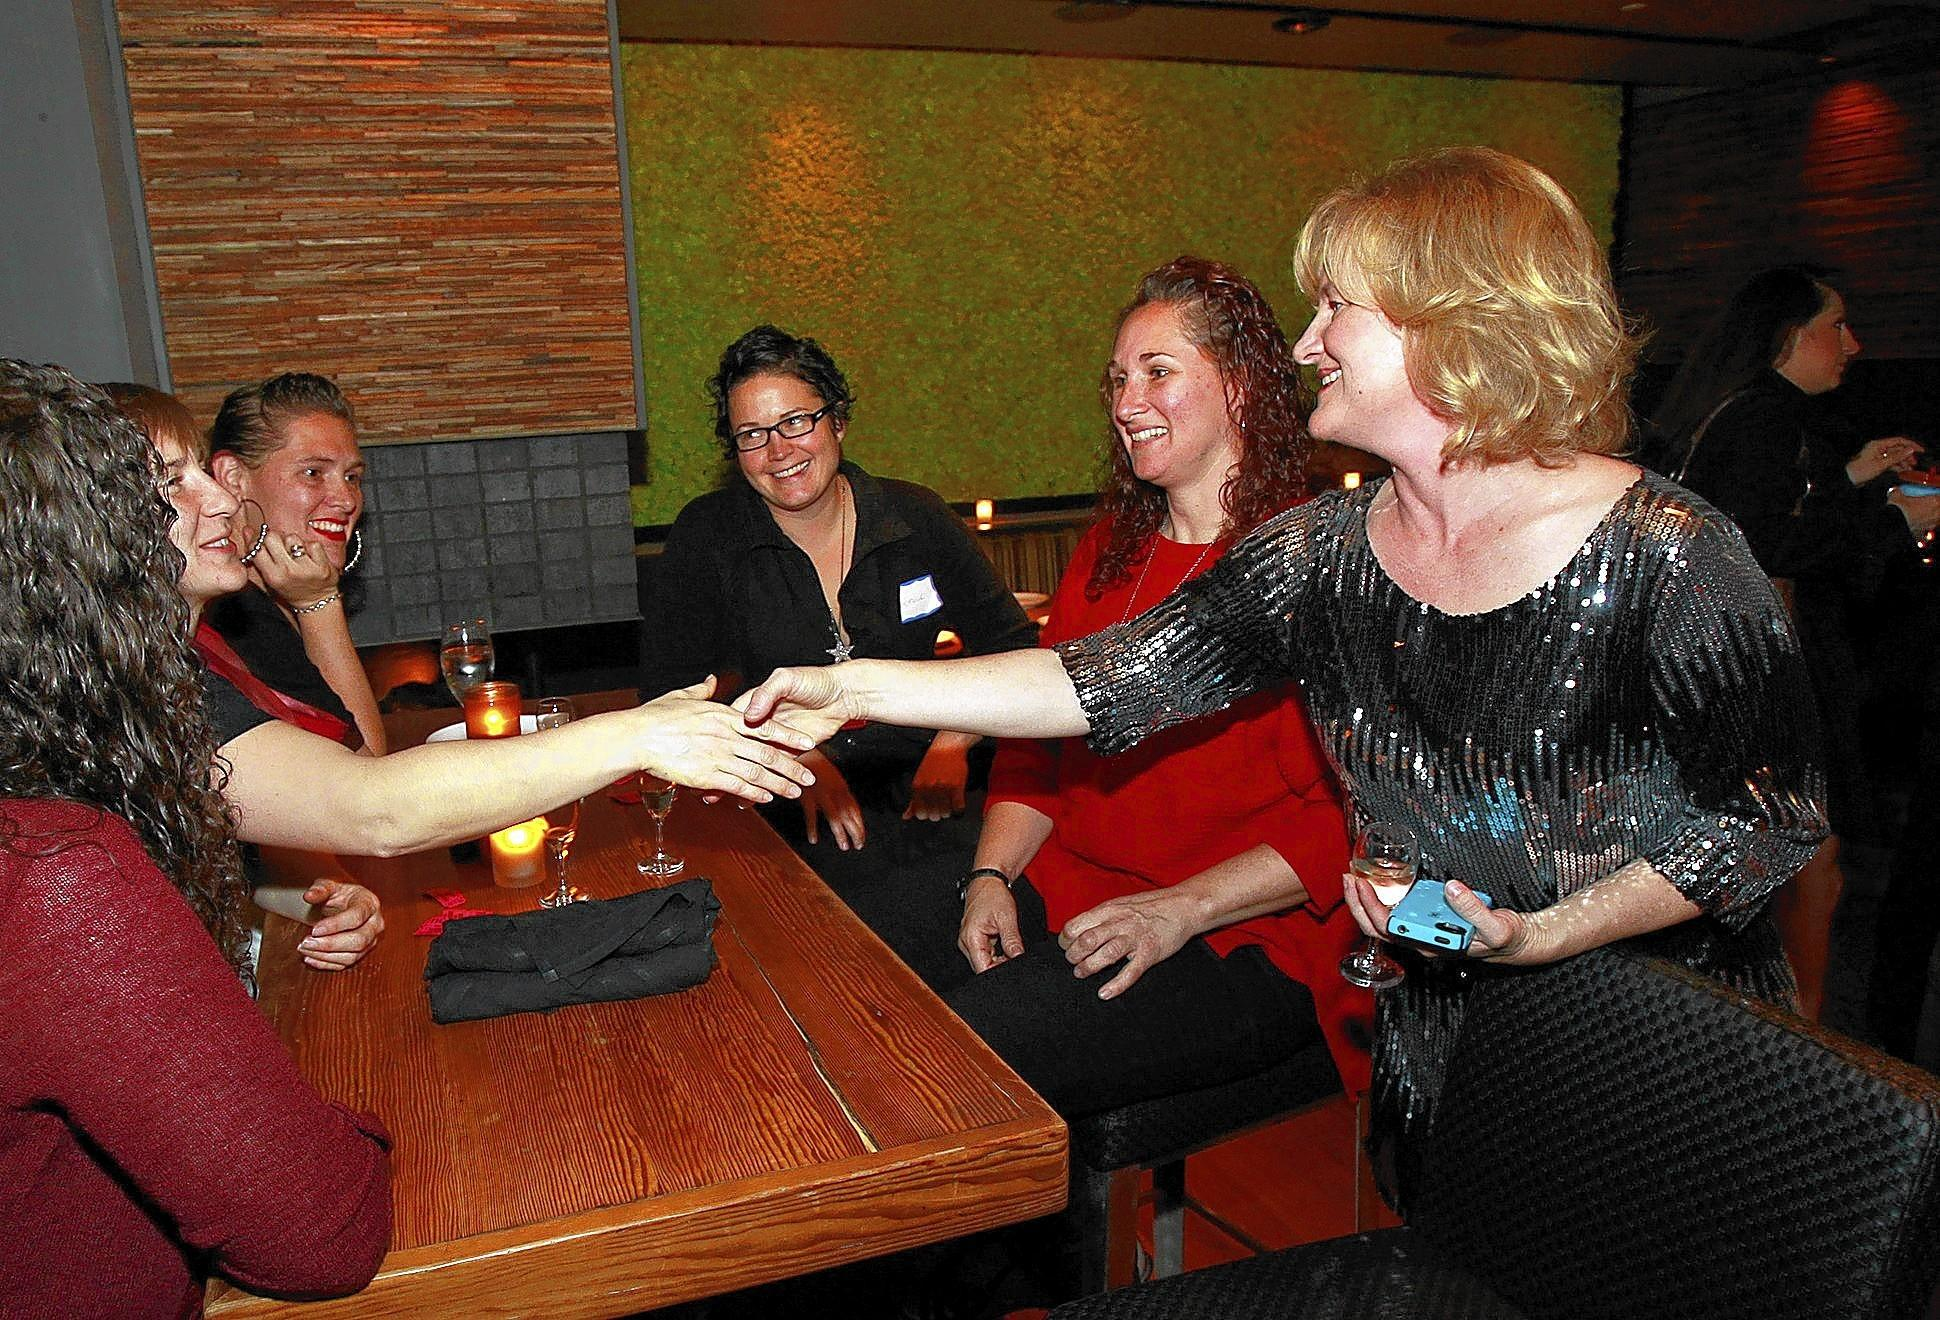 Katrina Foley, right, officially launched her campaign for Costa Mesa City Council on Wednesday night.